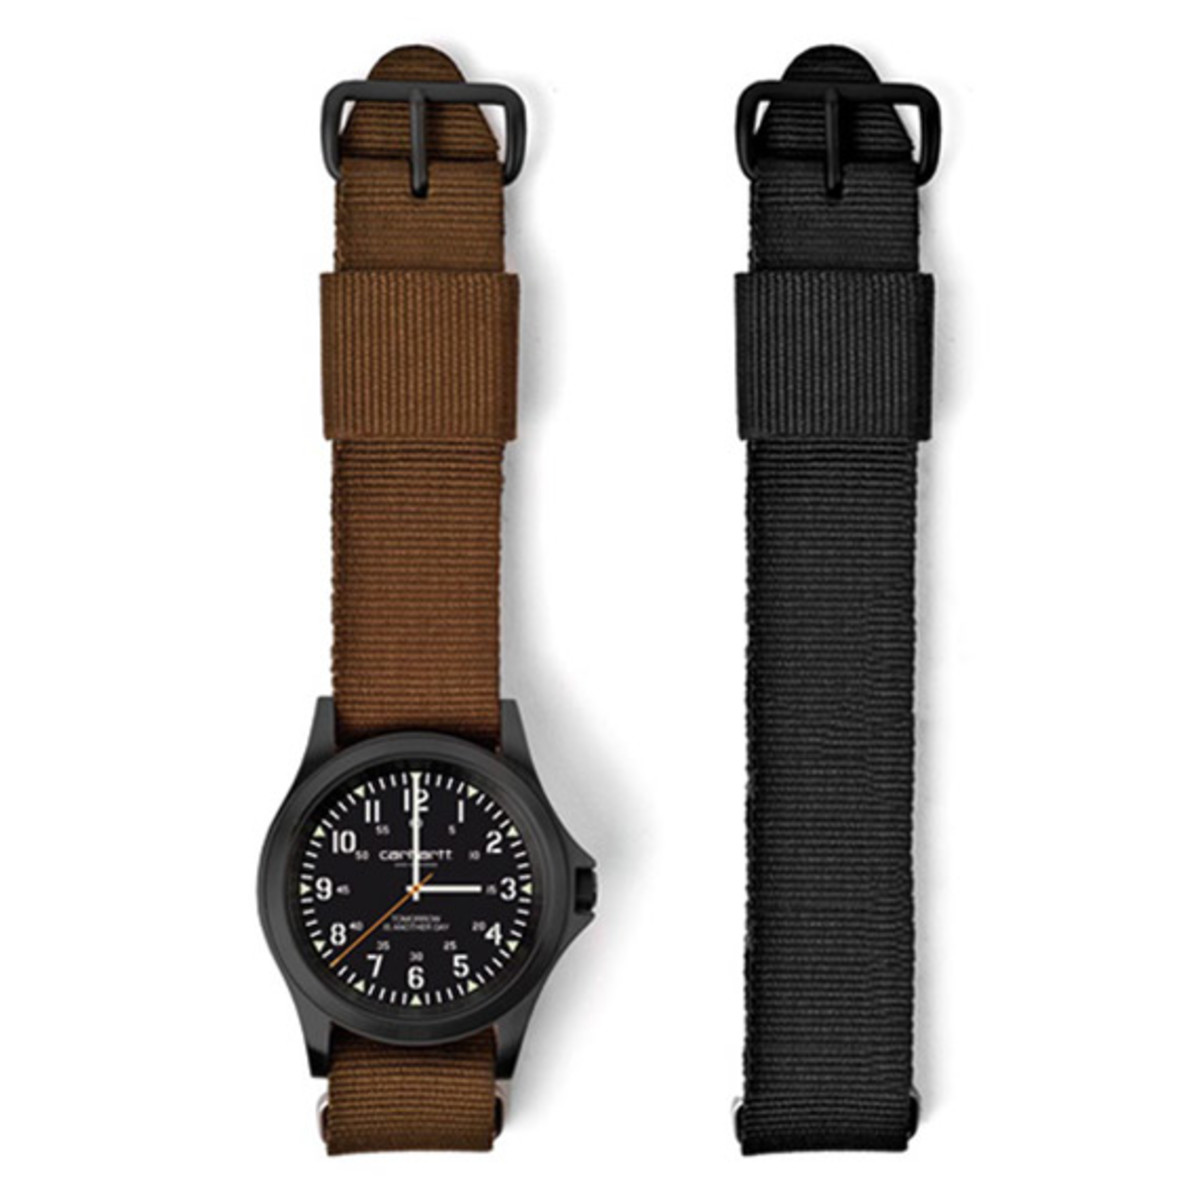 carhartt-wip-military-watch-06